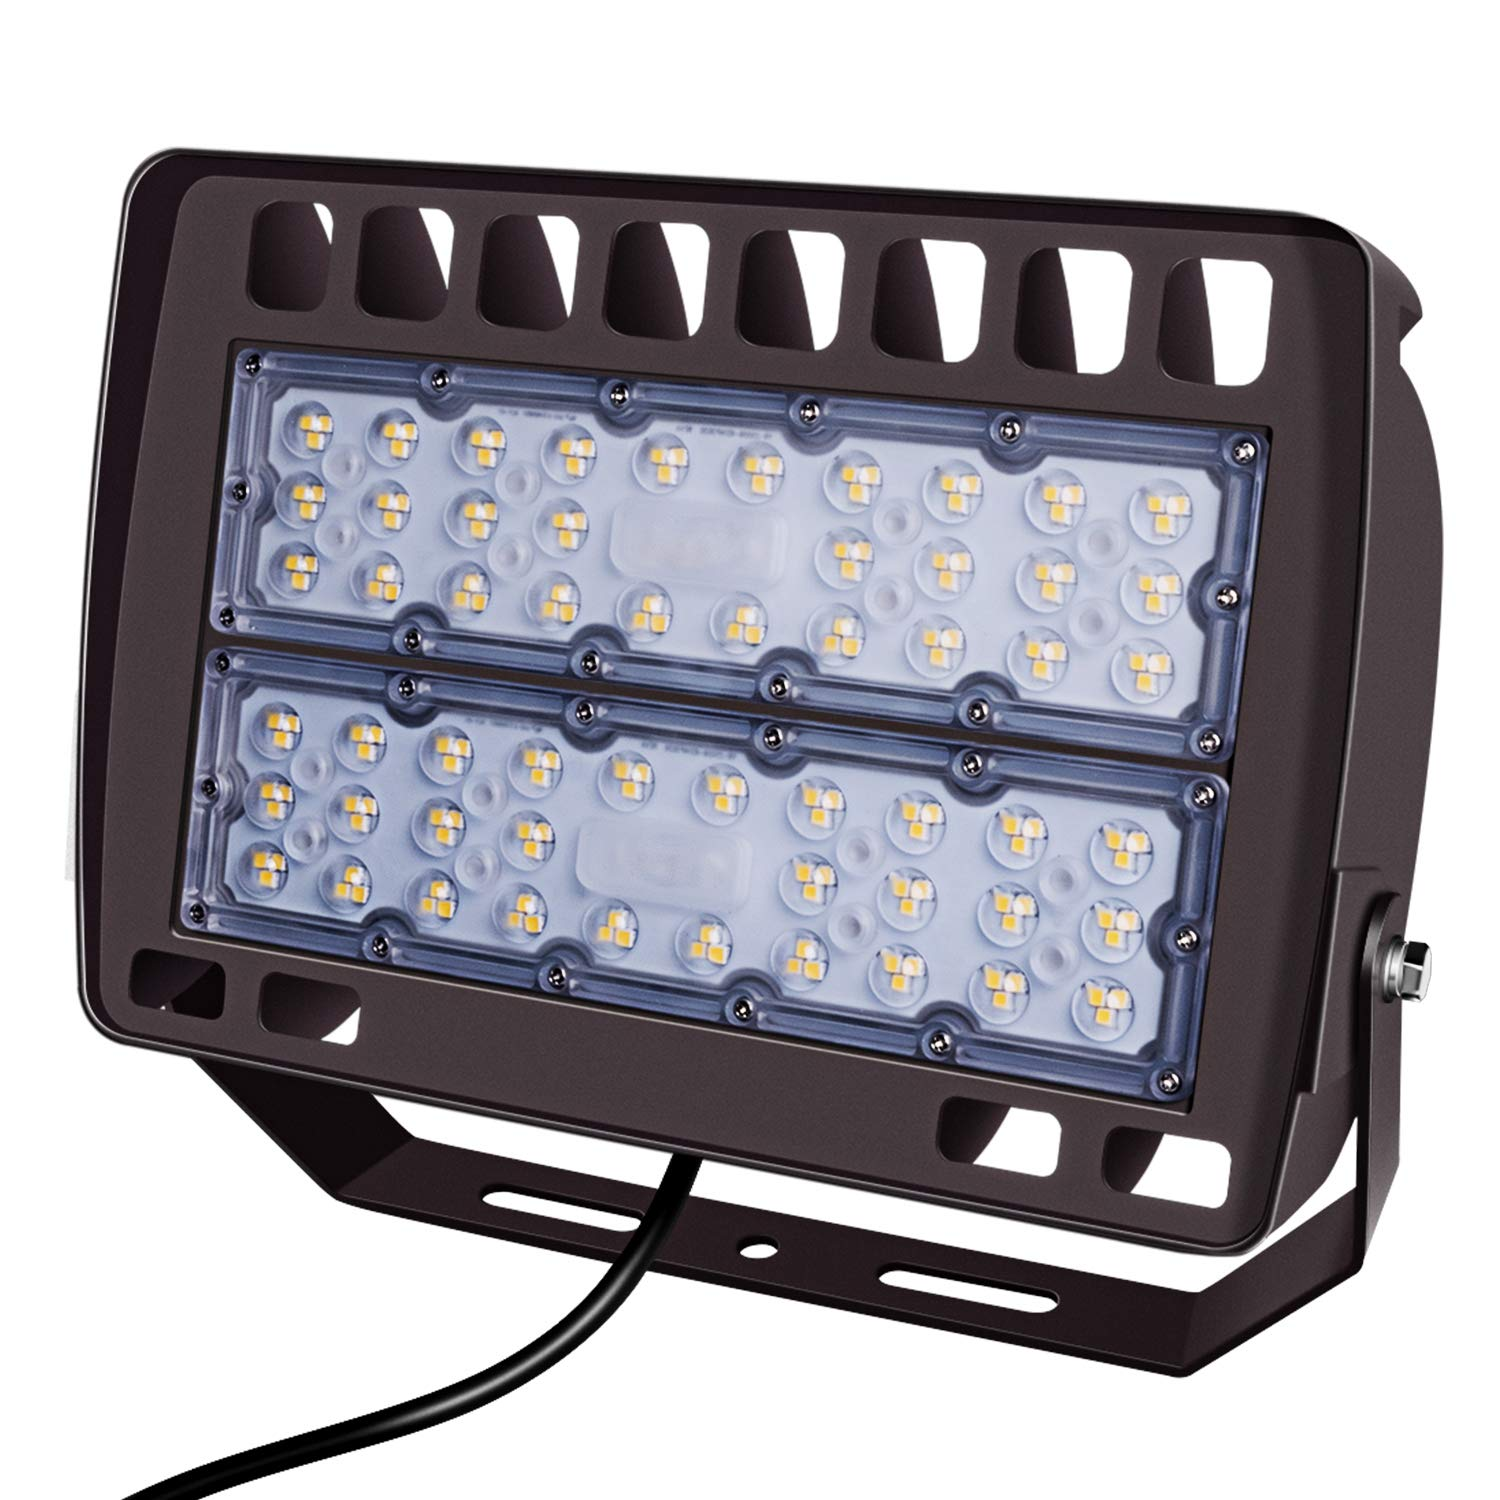 FaithSail 150W LED Flood Light Outdoor Stadium Lights, 16500LM, 5700K, IP66 Waterproof LED Floodlight, Ultra Bright Parking Lot Arena Perimeter and Security Lighting Fixture for Court, Yard, Garden